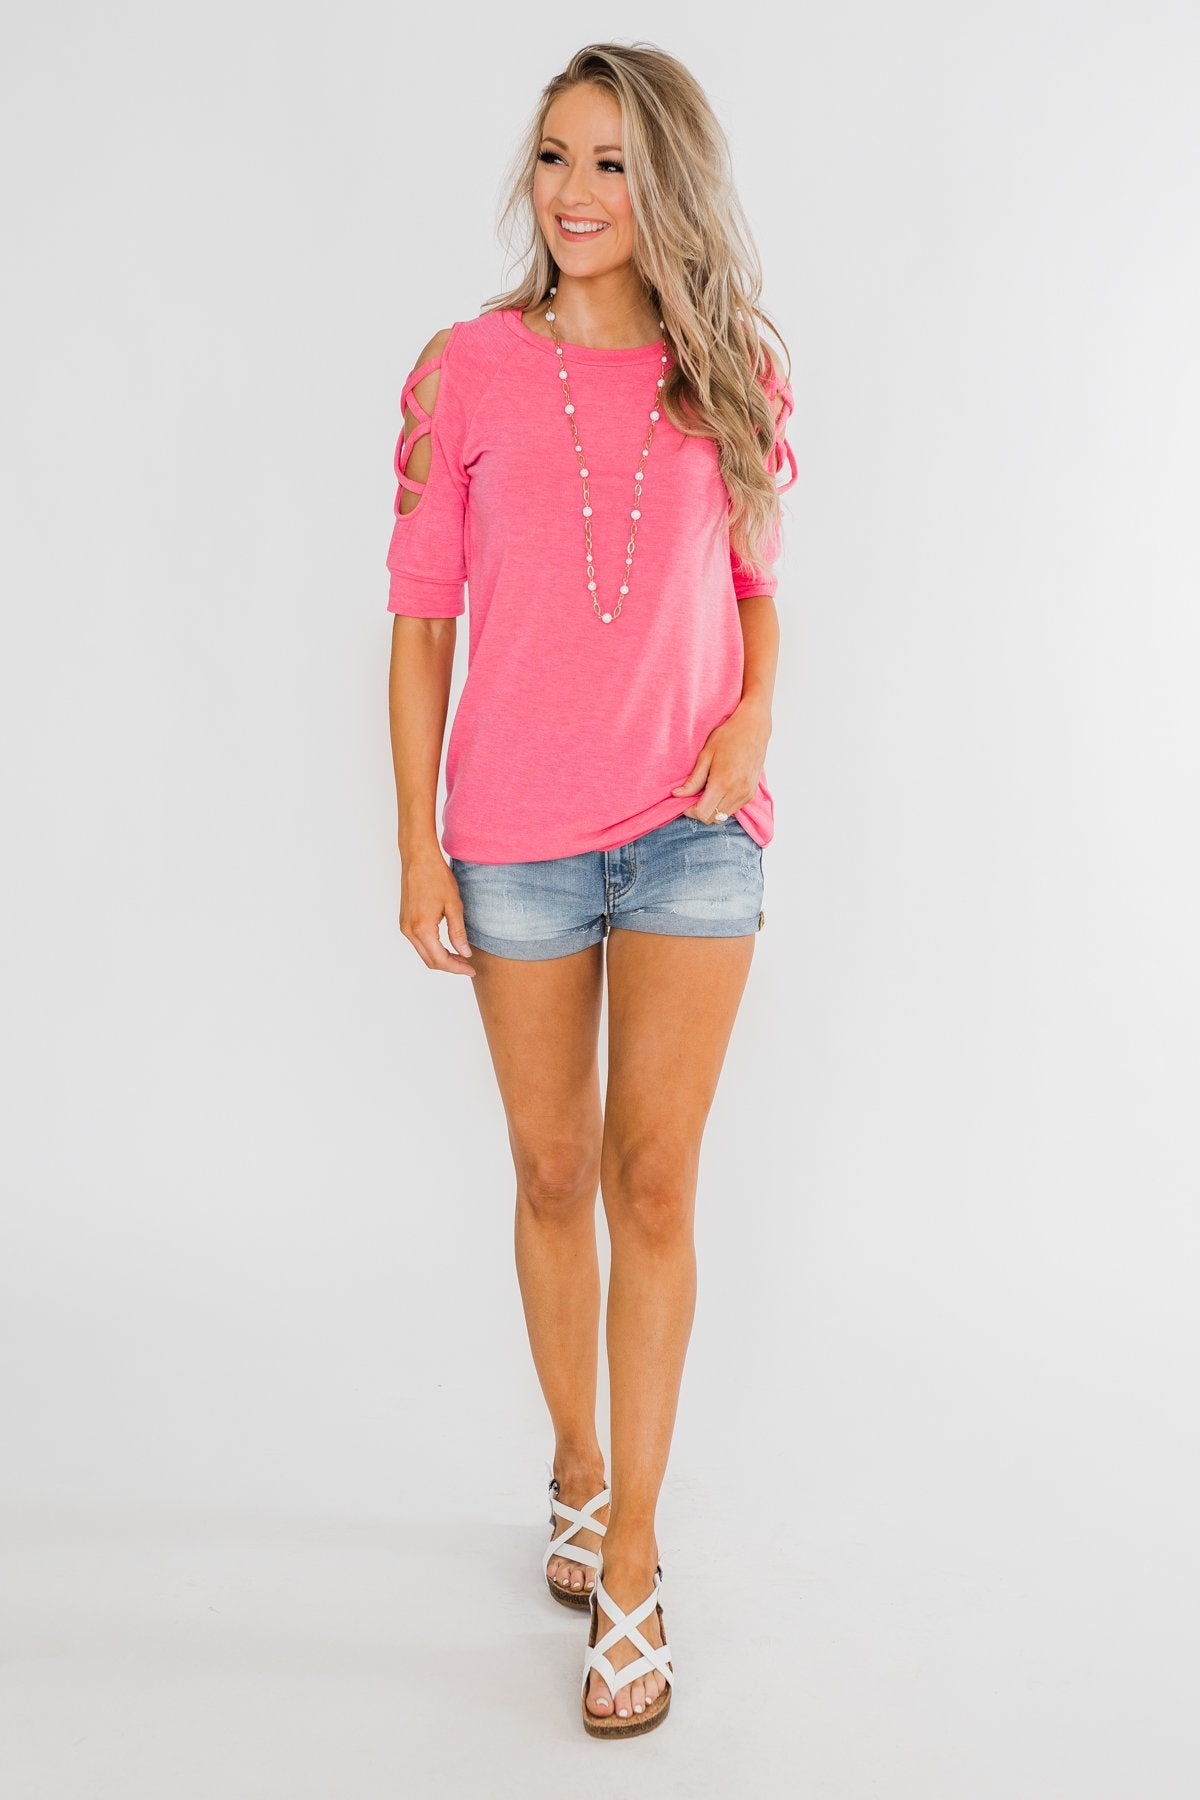 Once Upon A Time Criss Cross Sleeve Top- Ultra Pink